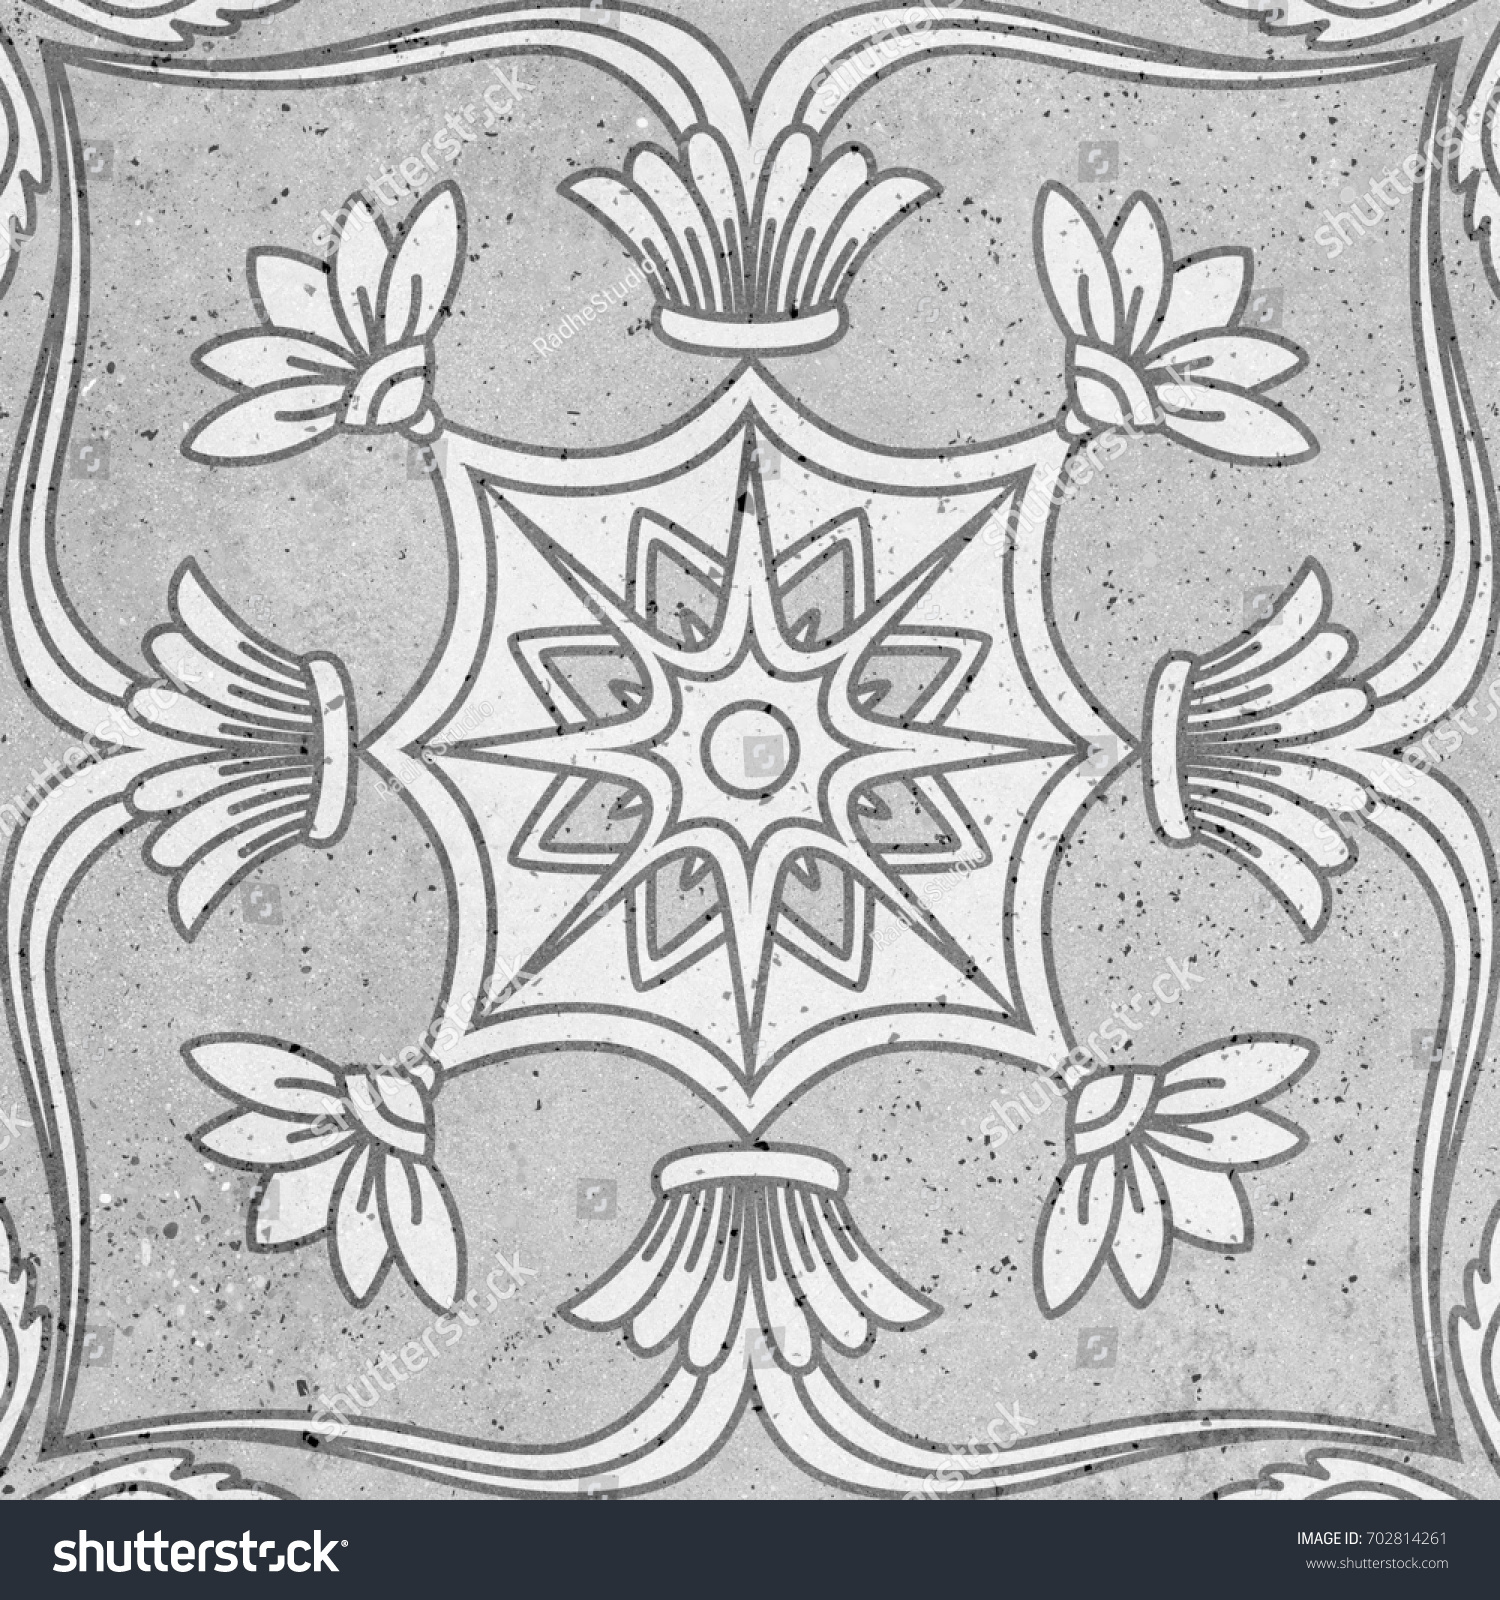 Marble mosaic floor tiles geometric square stock illustration marble mosaic floor tiles geometric square pattern wall tiles dailygadgetfo Gallery